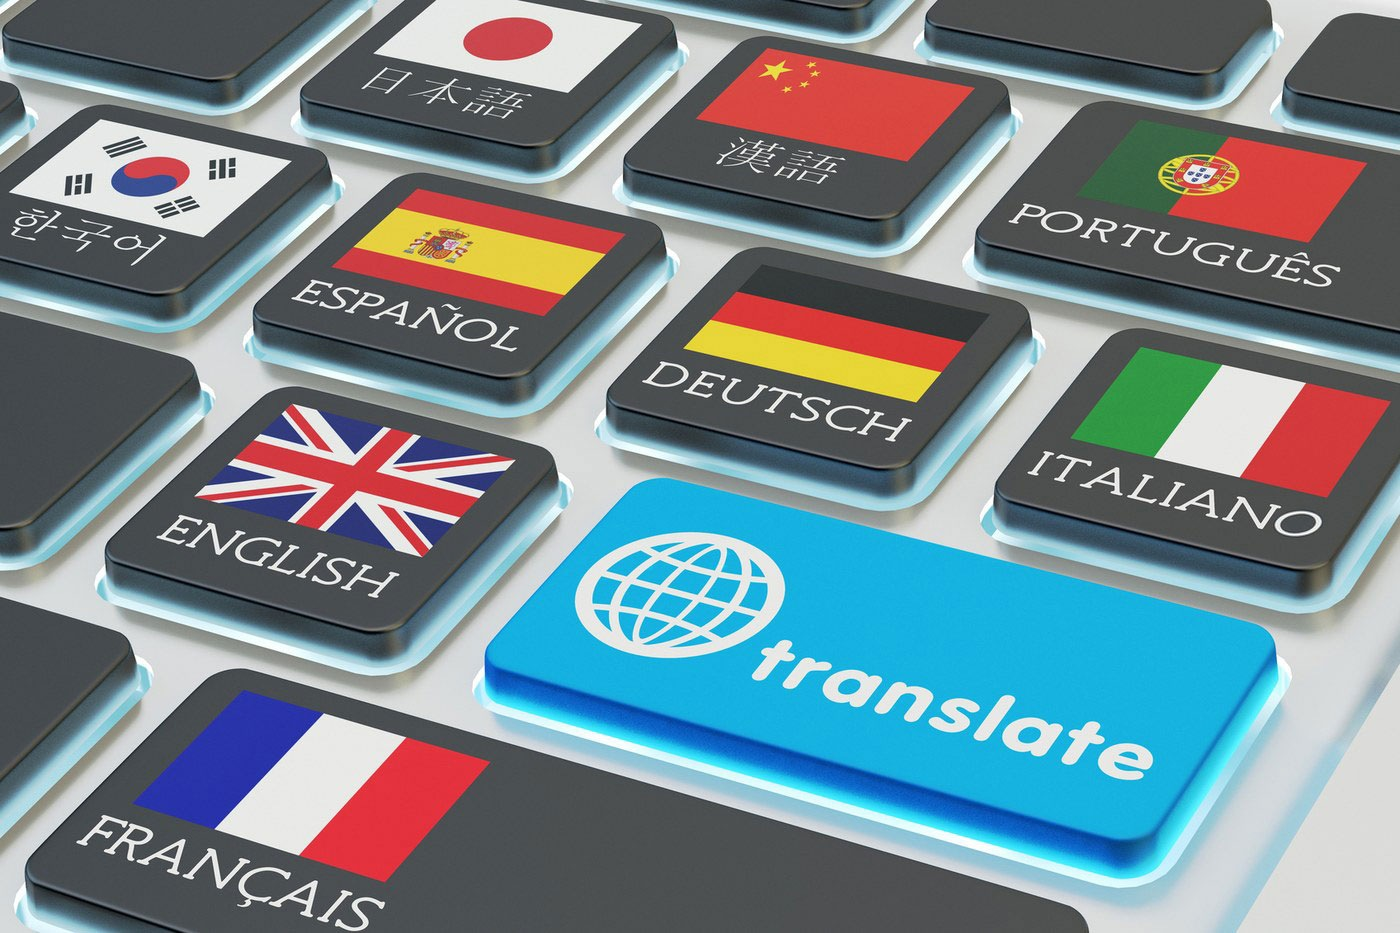 Stock image depicting computer keyboard with keys representing different countries and languages as well as translate key.